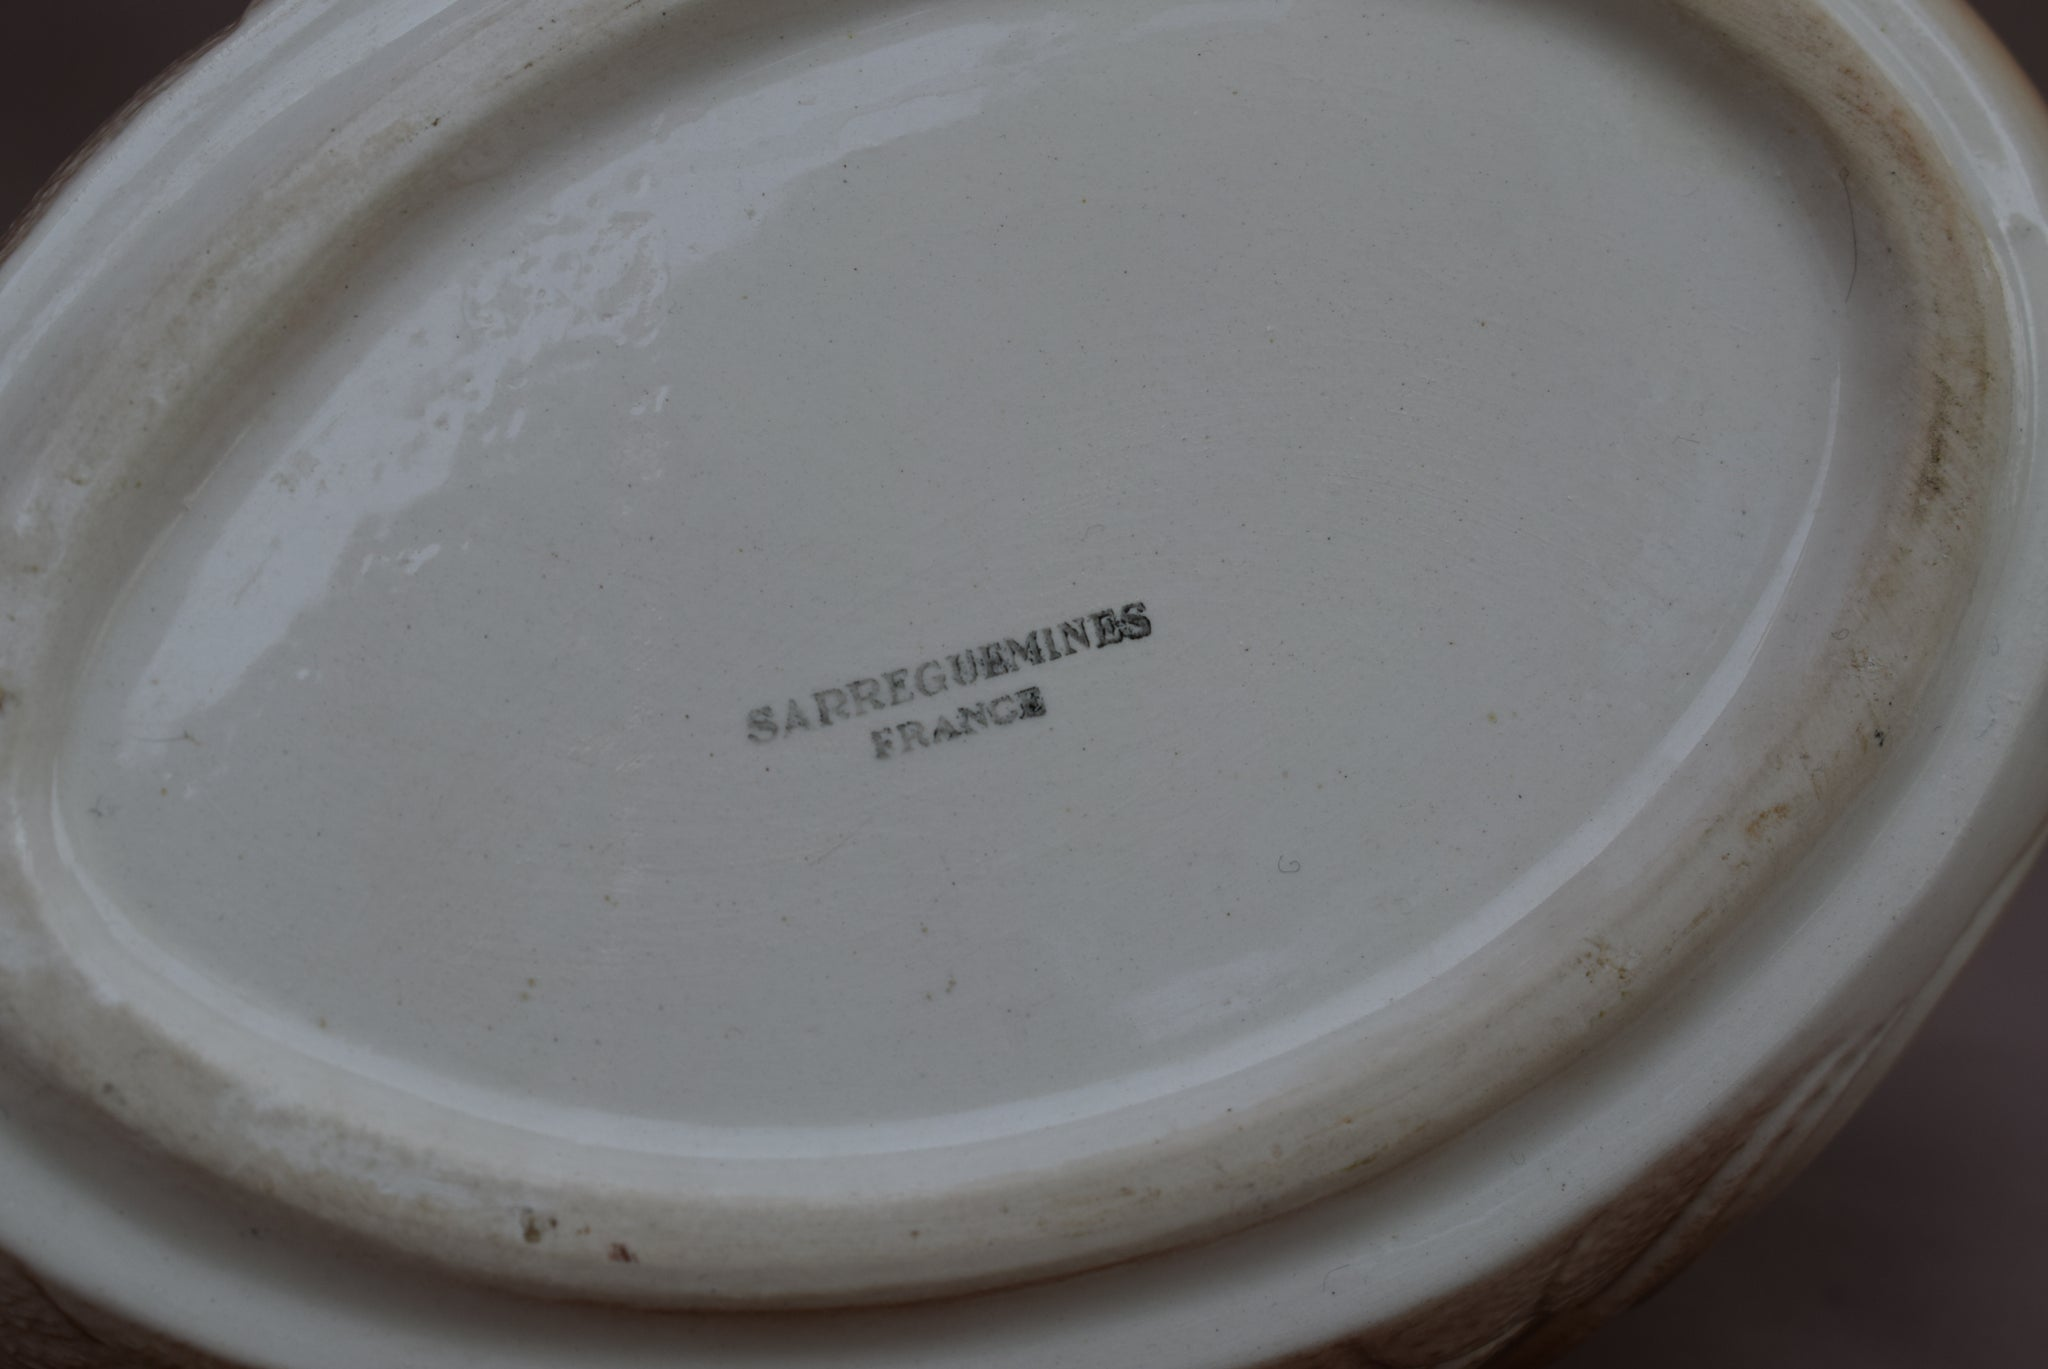 Fish Sauce Bowl - Charmantiques